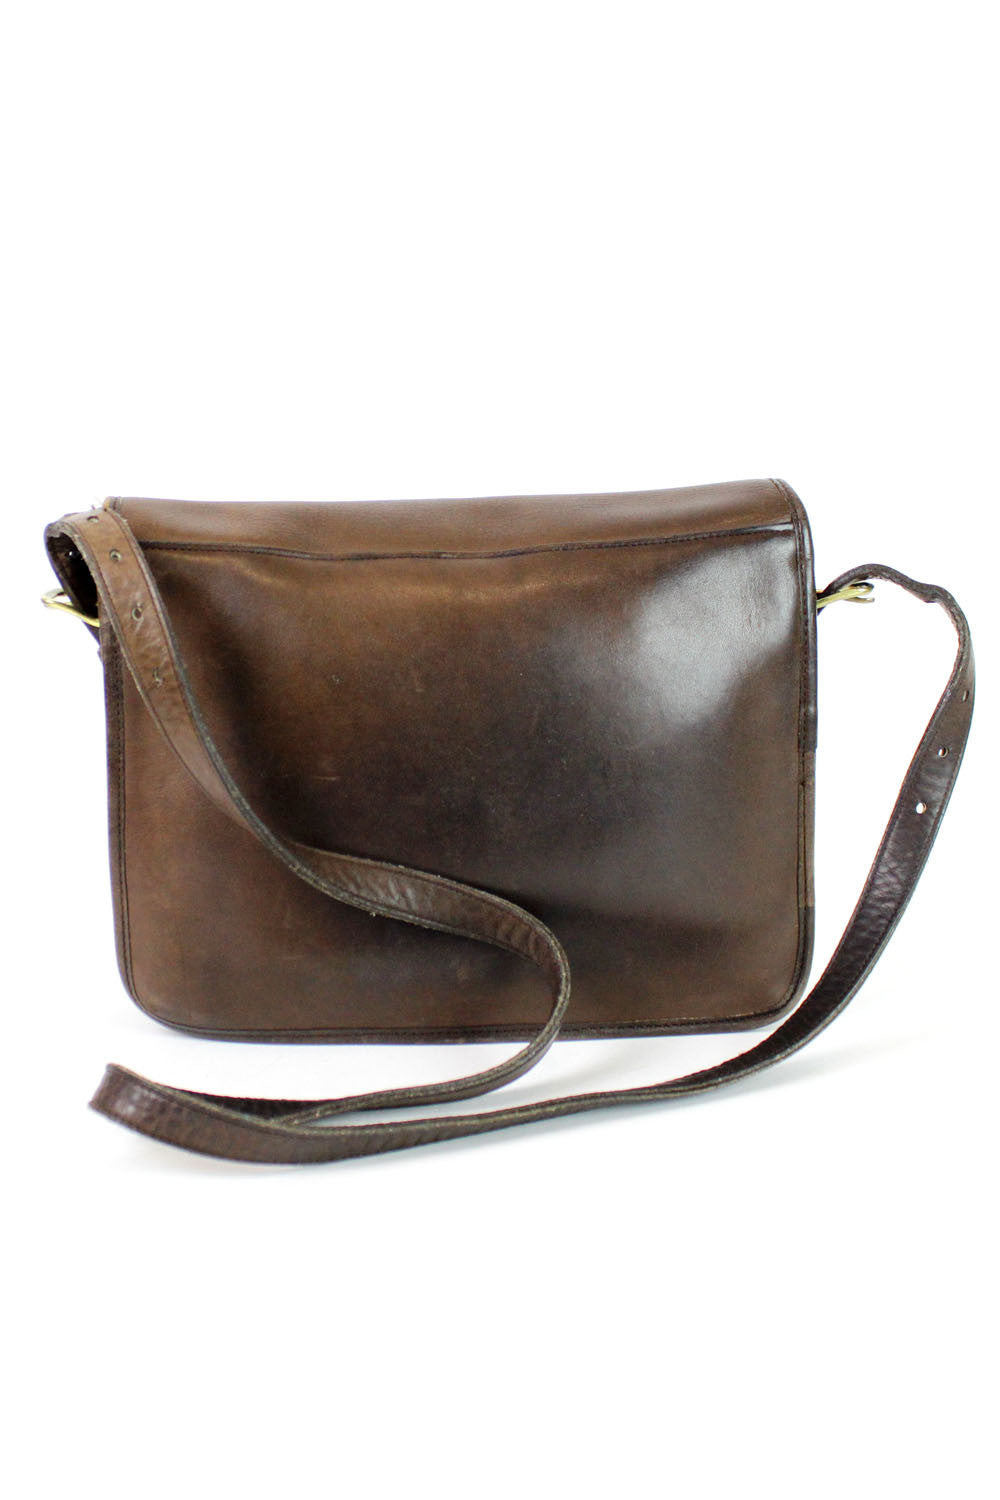 Coach 1970s walnut messenger